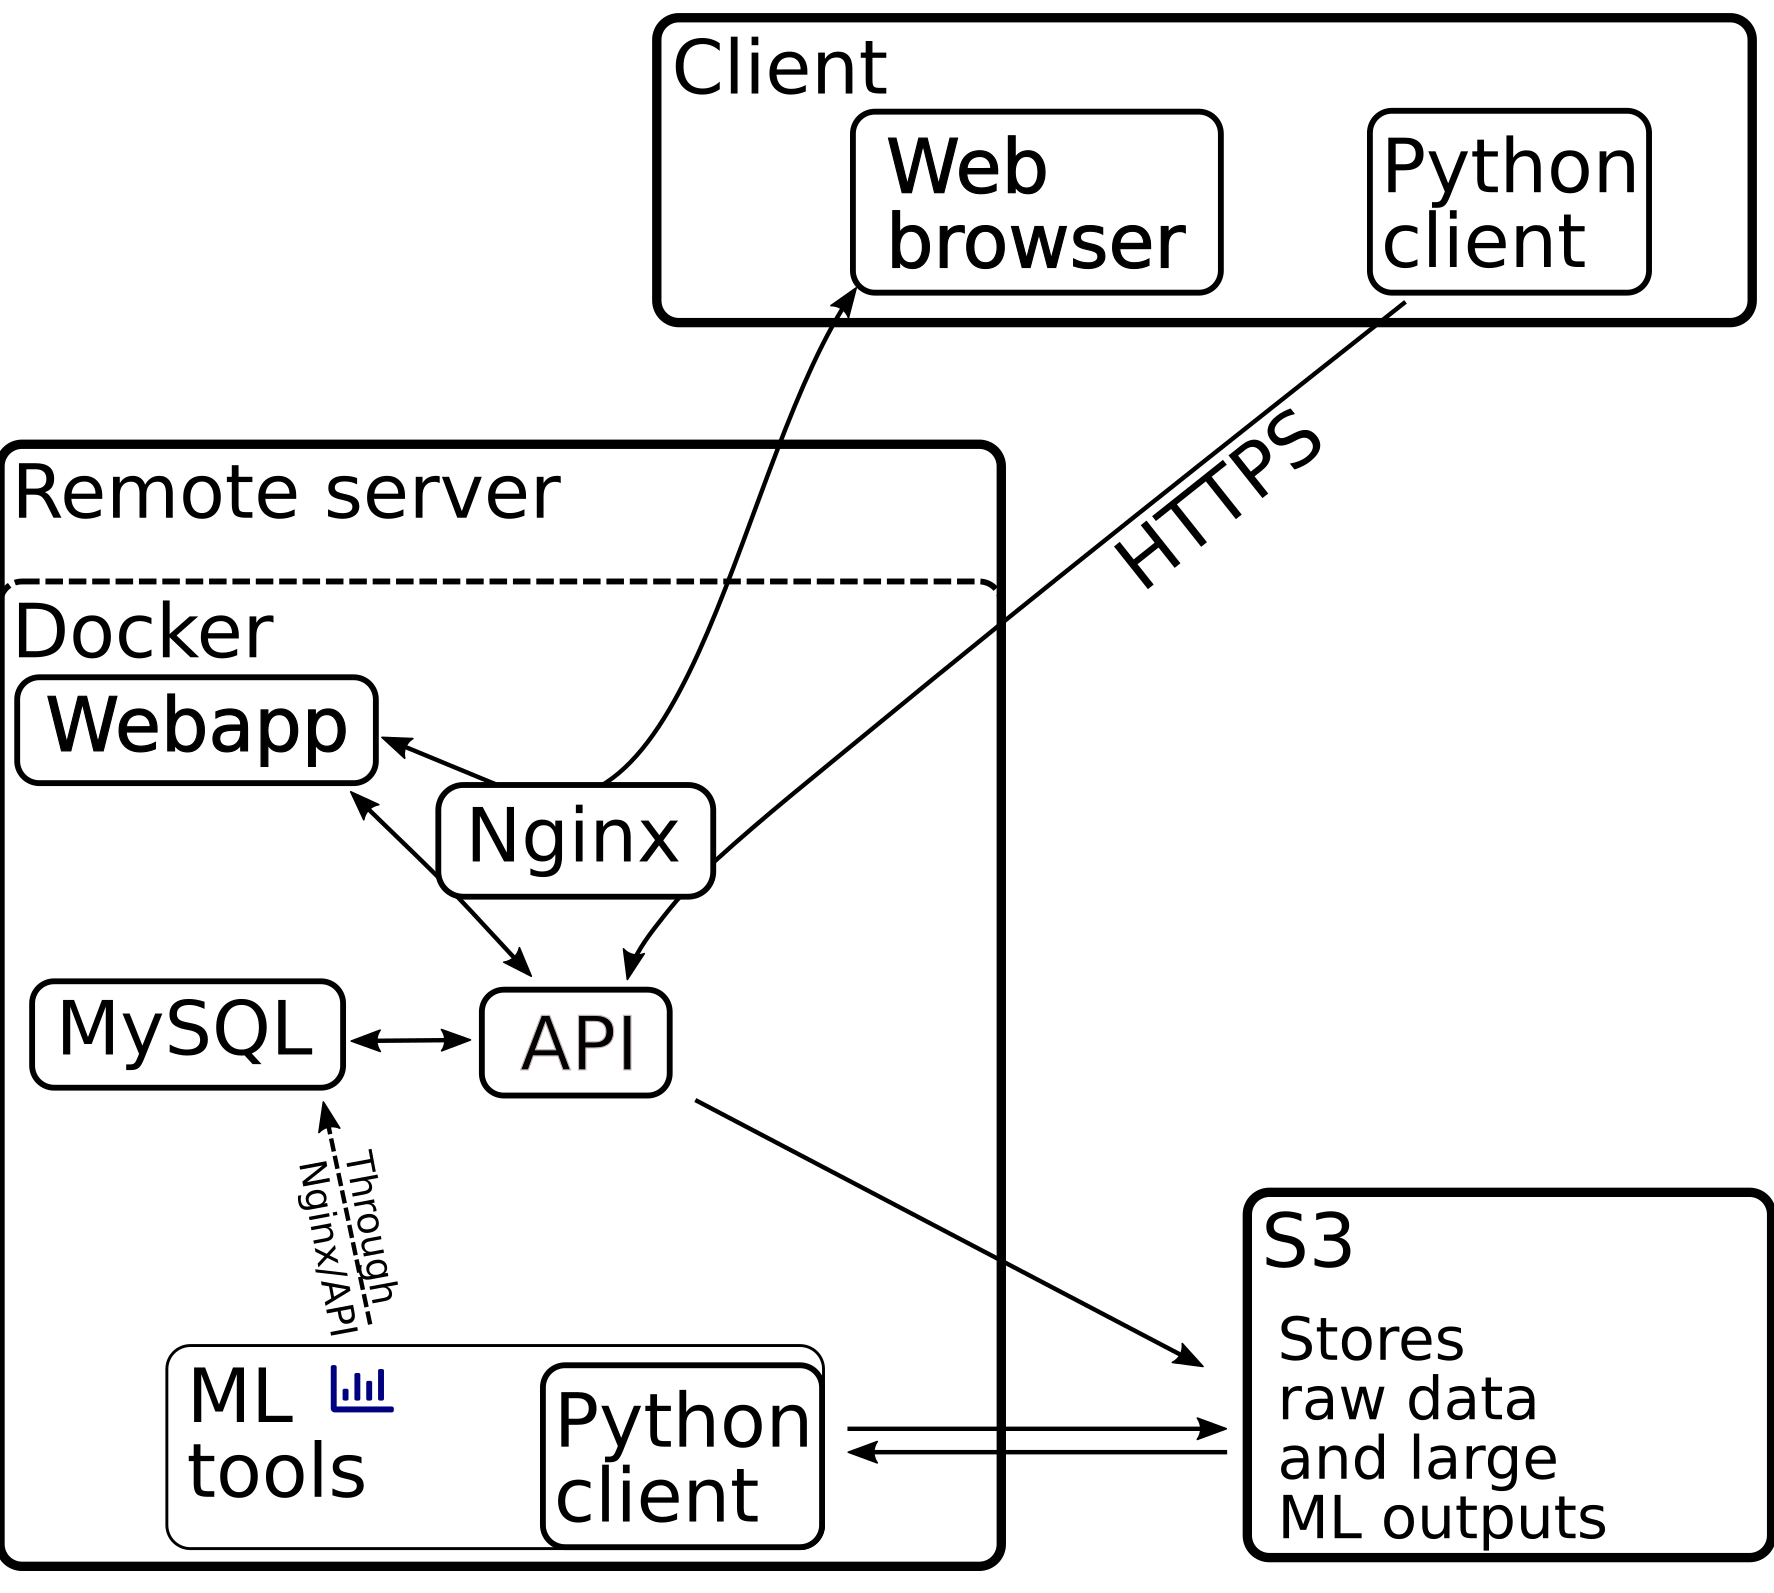 Schematics of the web server services